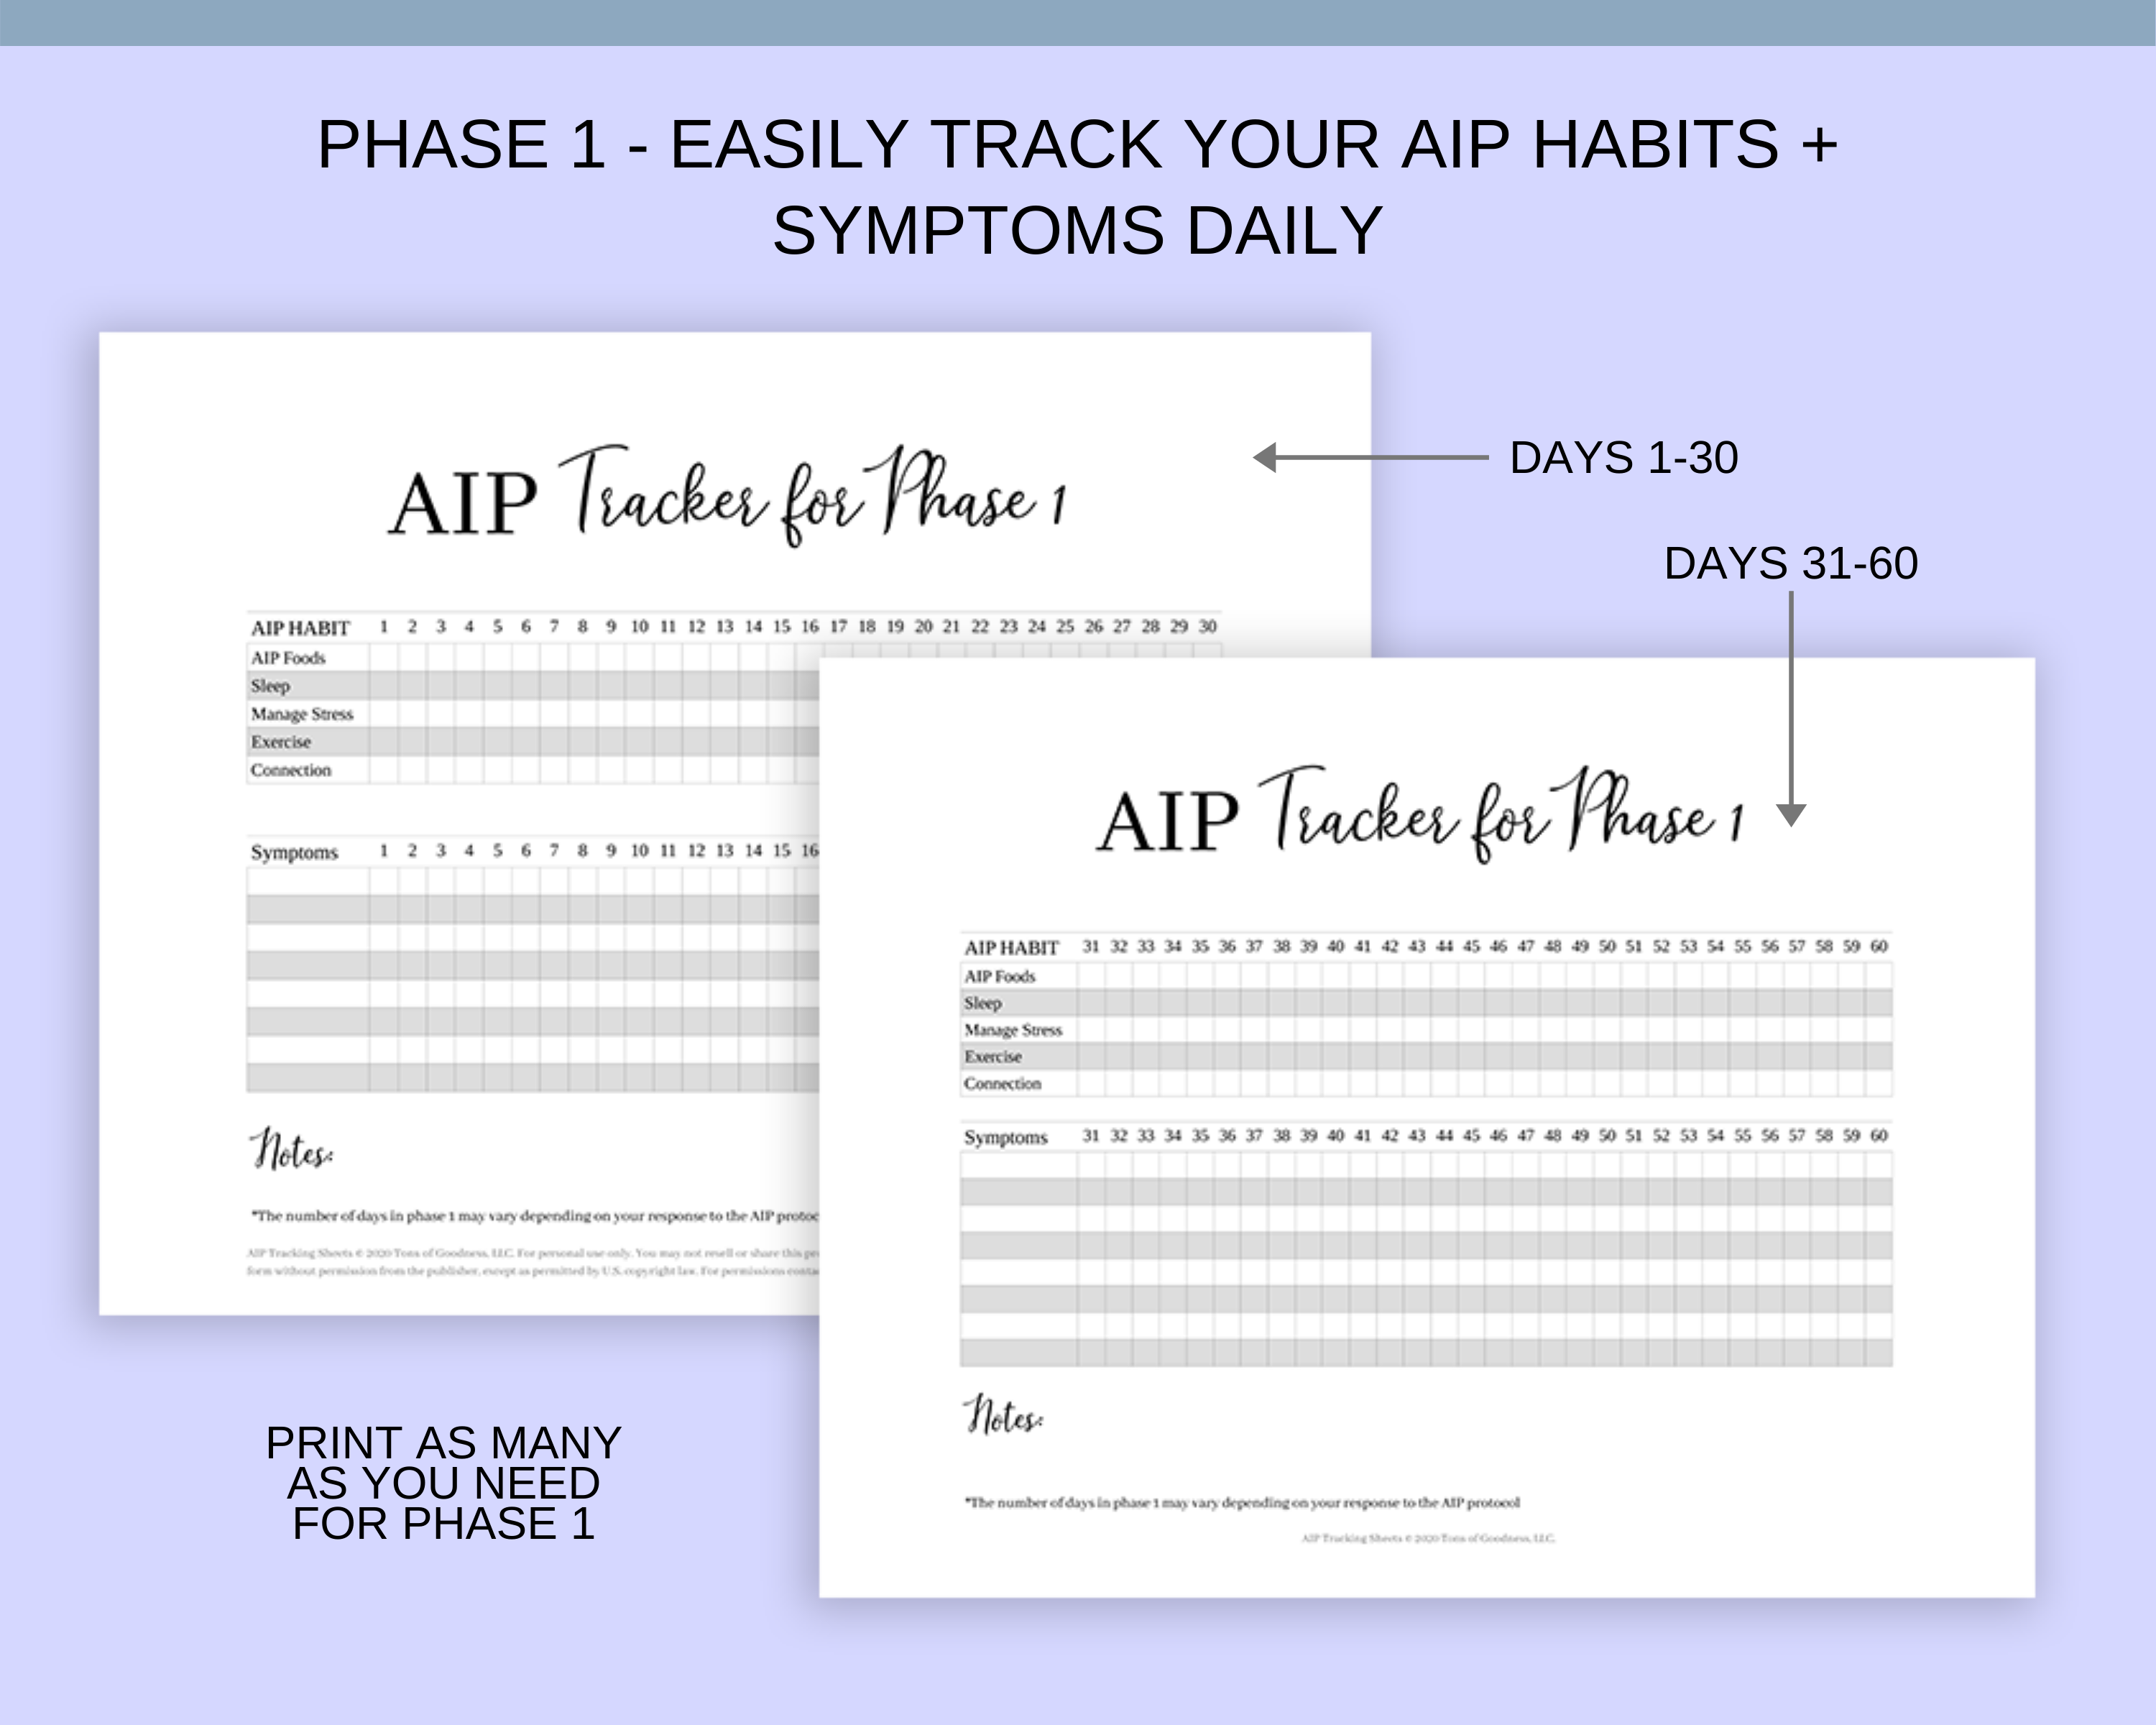 AIP tracking sheets